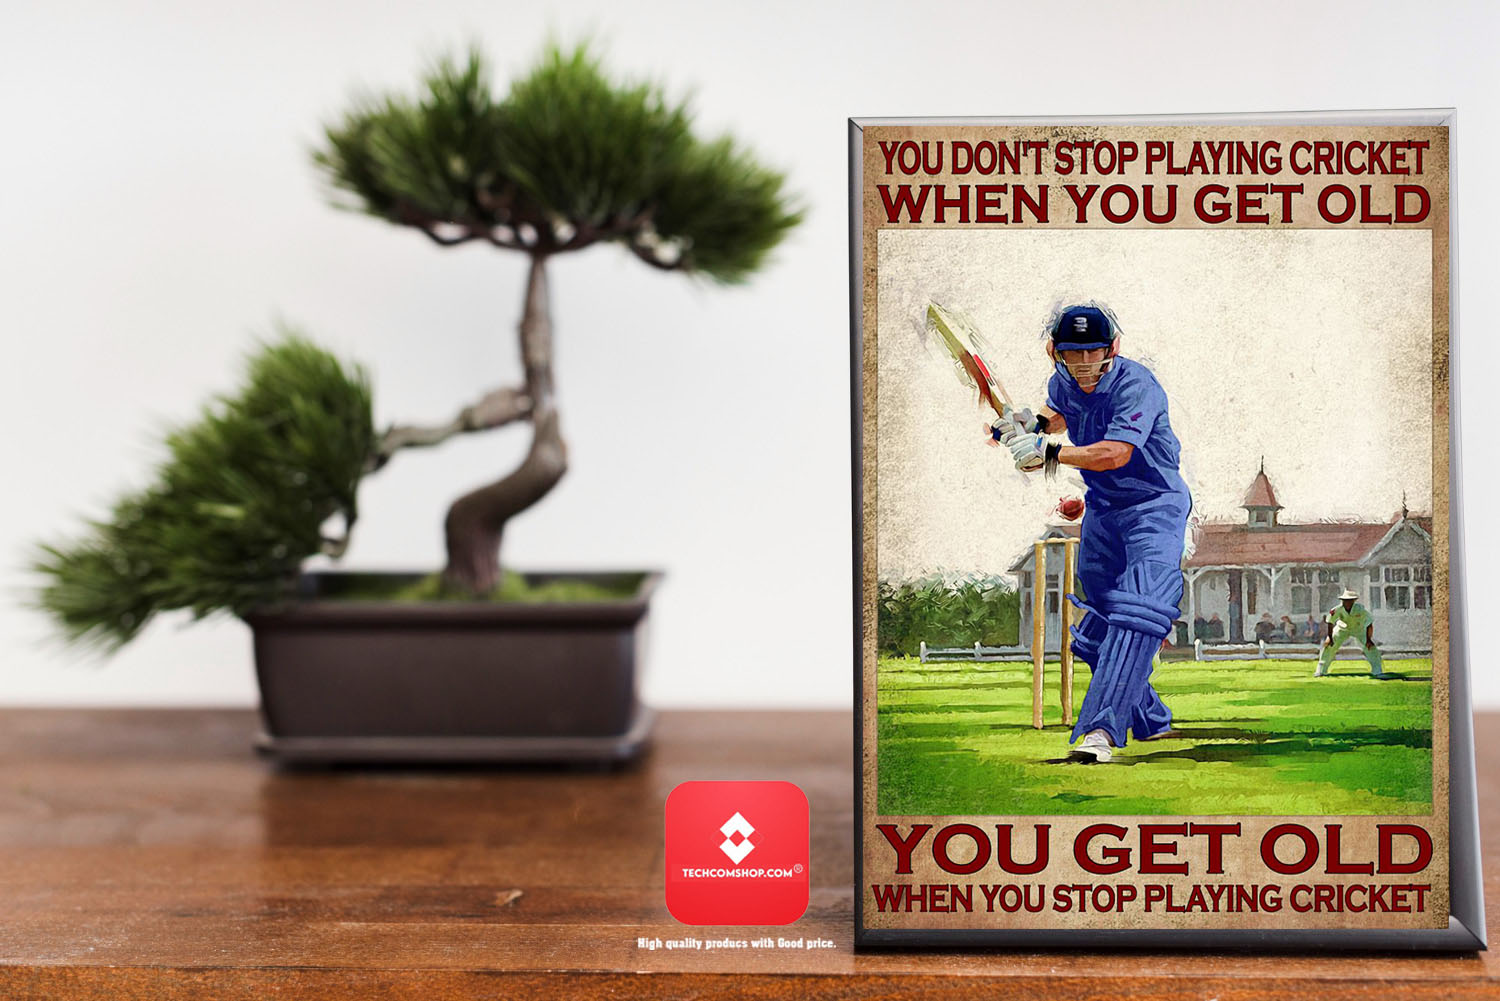 You don't stop playing cricket when you get old poster 7